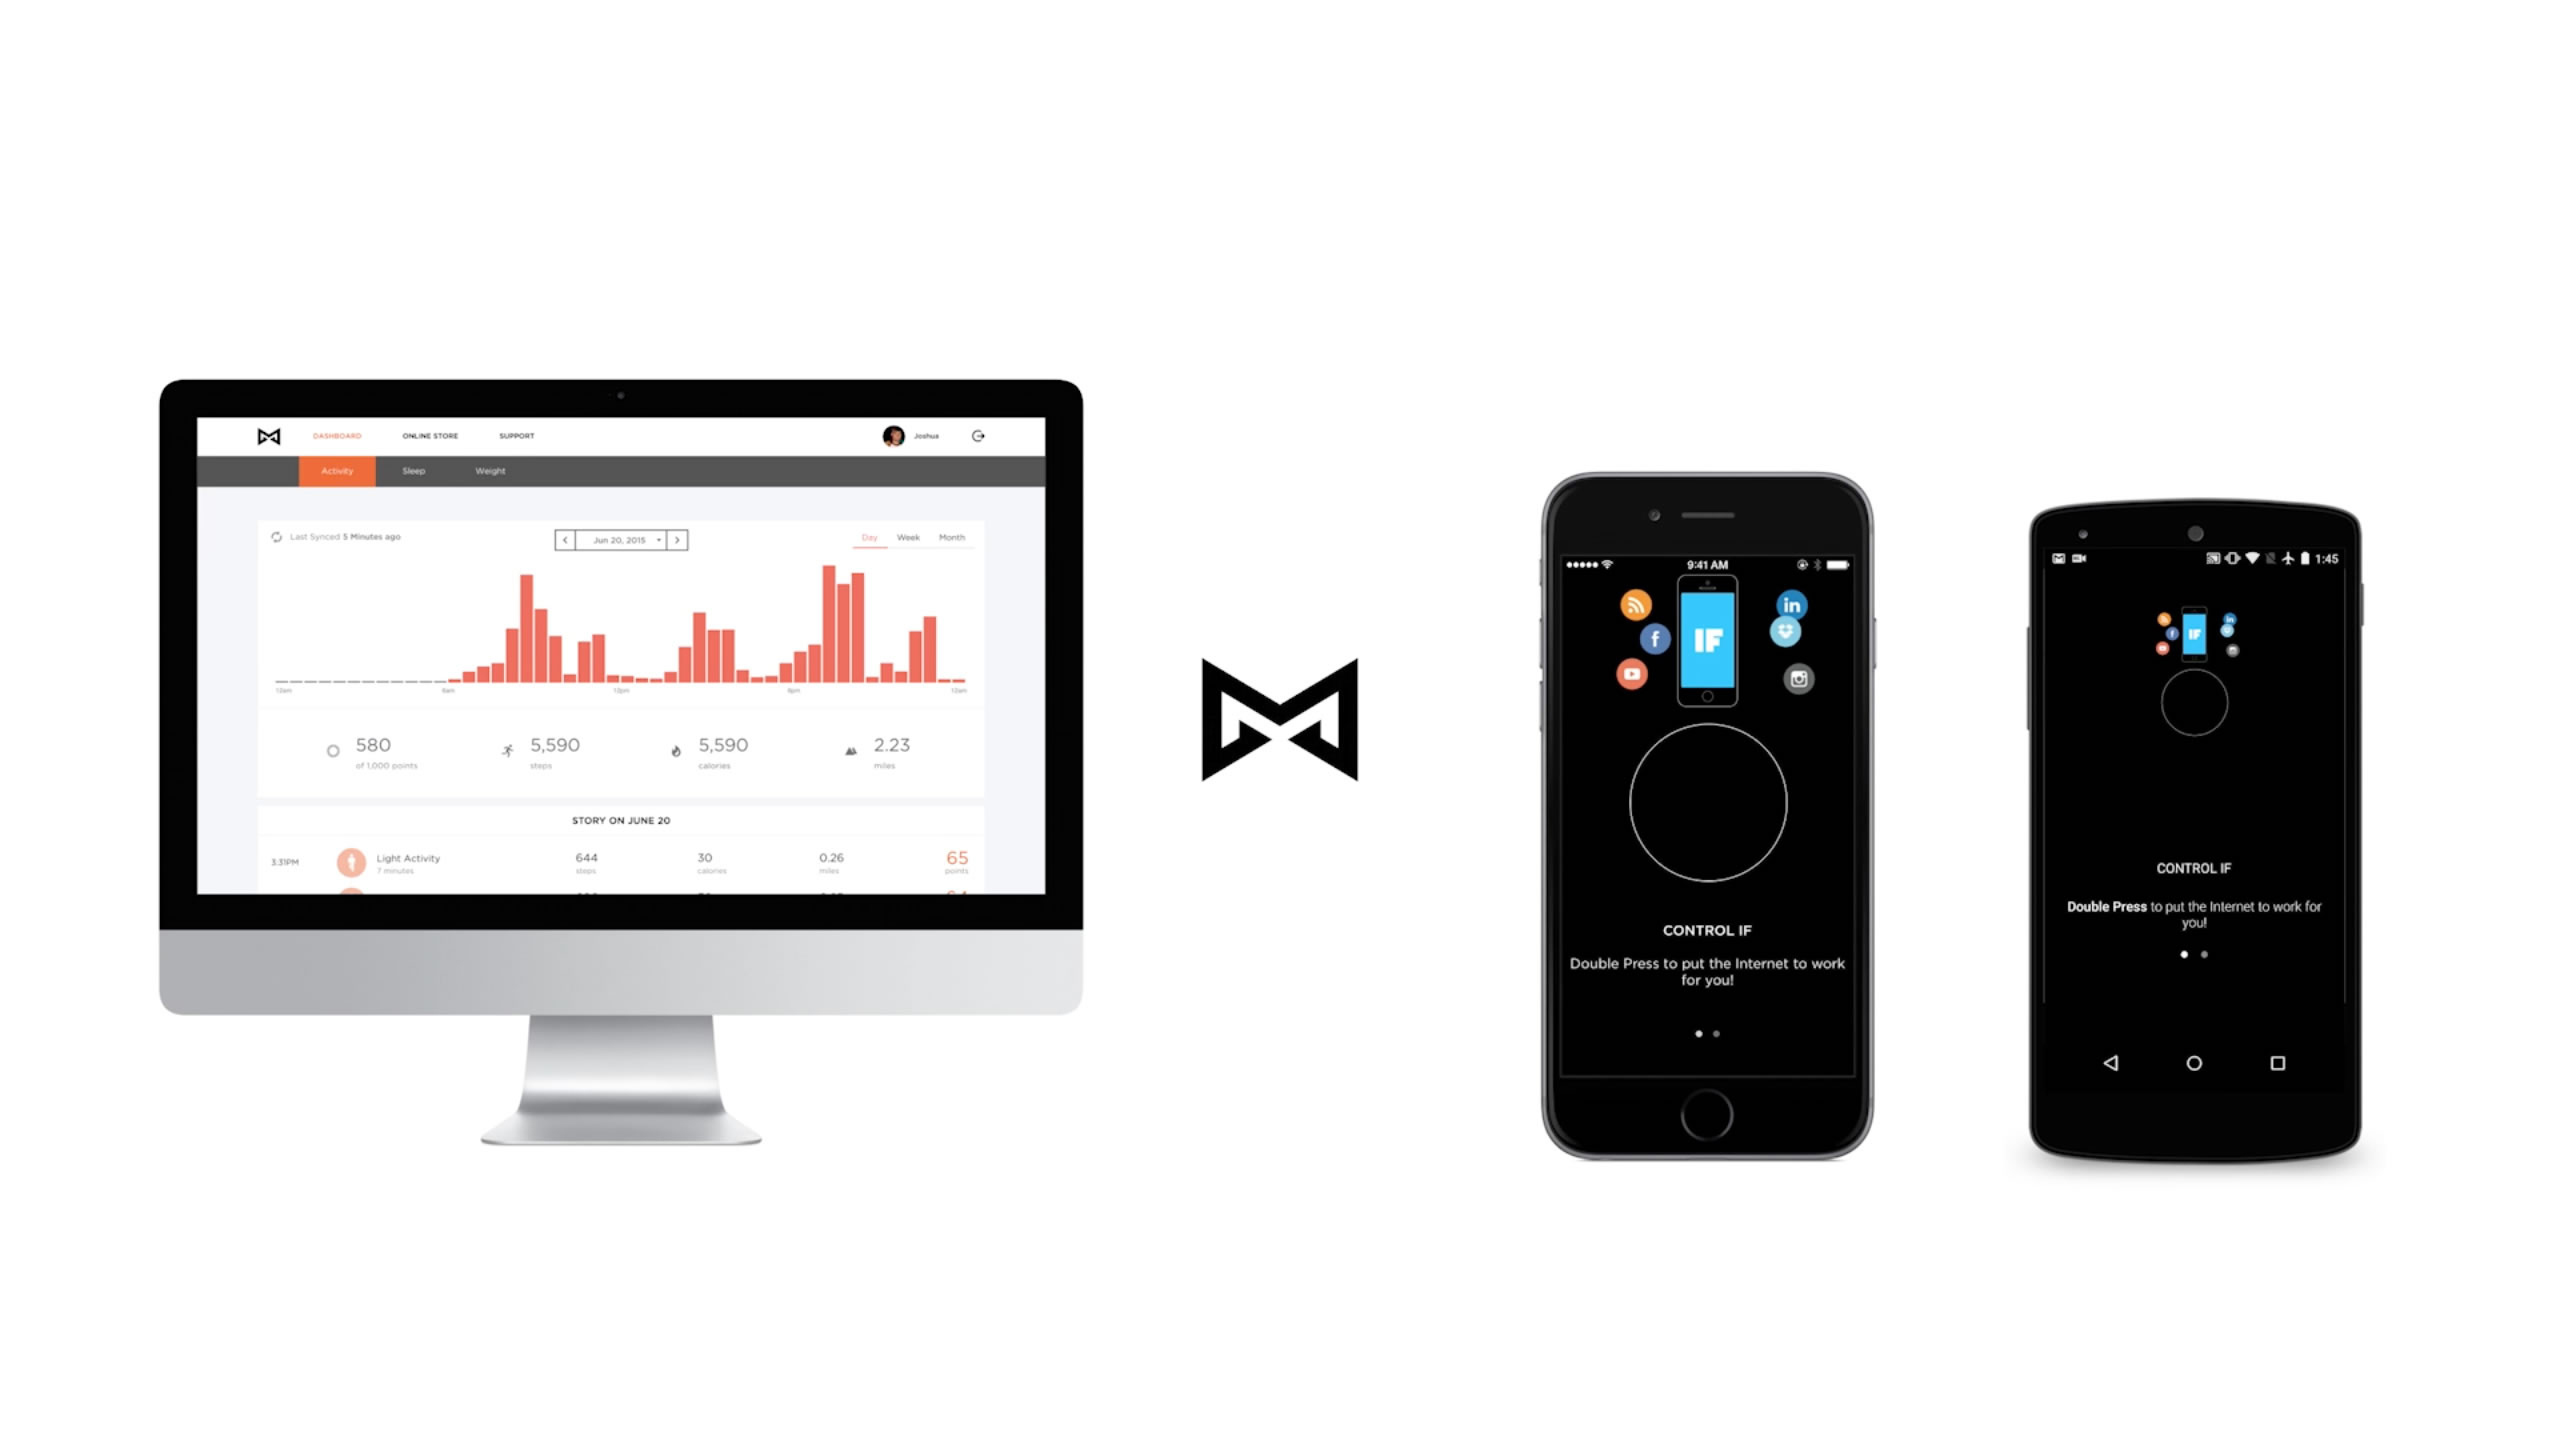 Misfit adds HealthKit integration and more to its iOS app